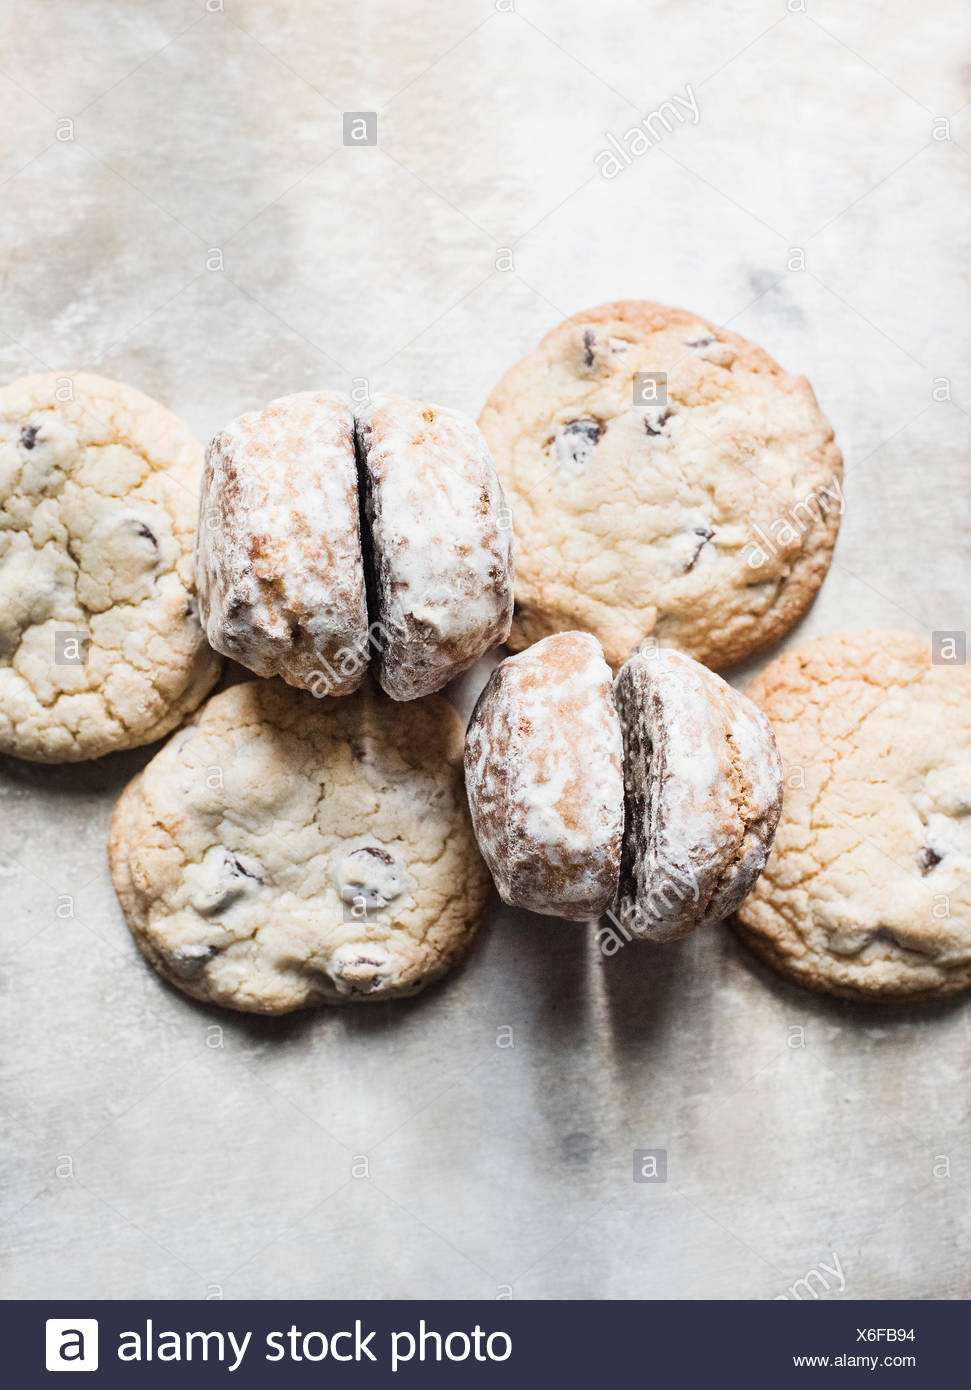 Overhead view of fresh scones and cookies - Stock Image